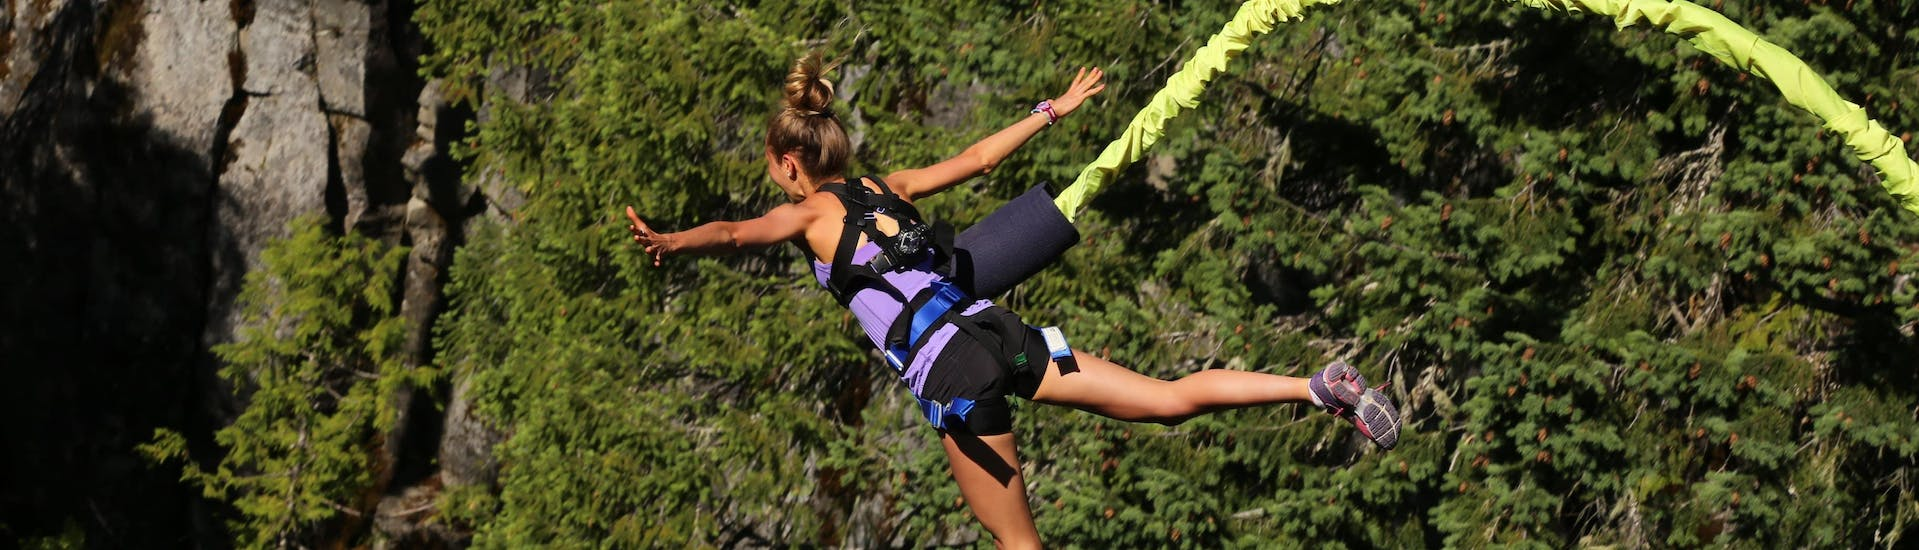 A young woman bungee jumping close to the bungee jumping hotspot of Italy.